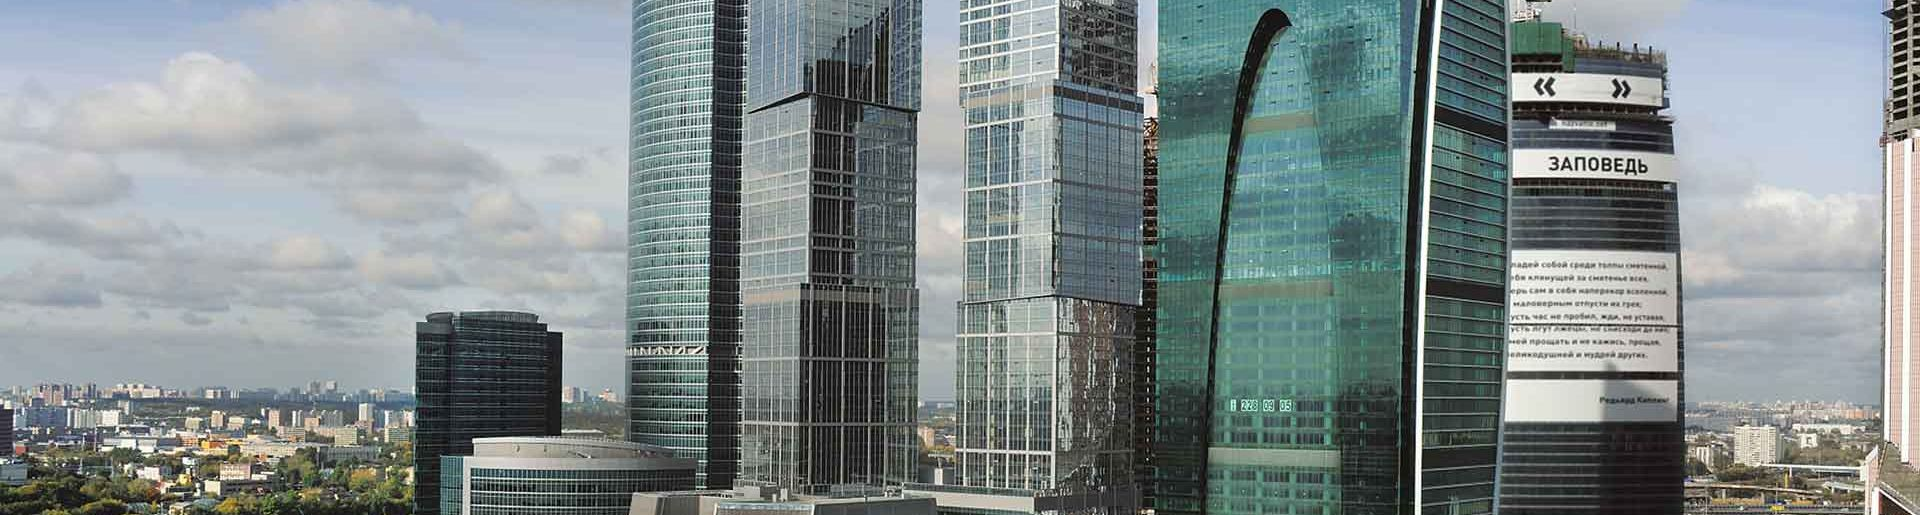 Moscow City Plot 4 Imperia Tower